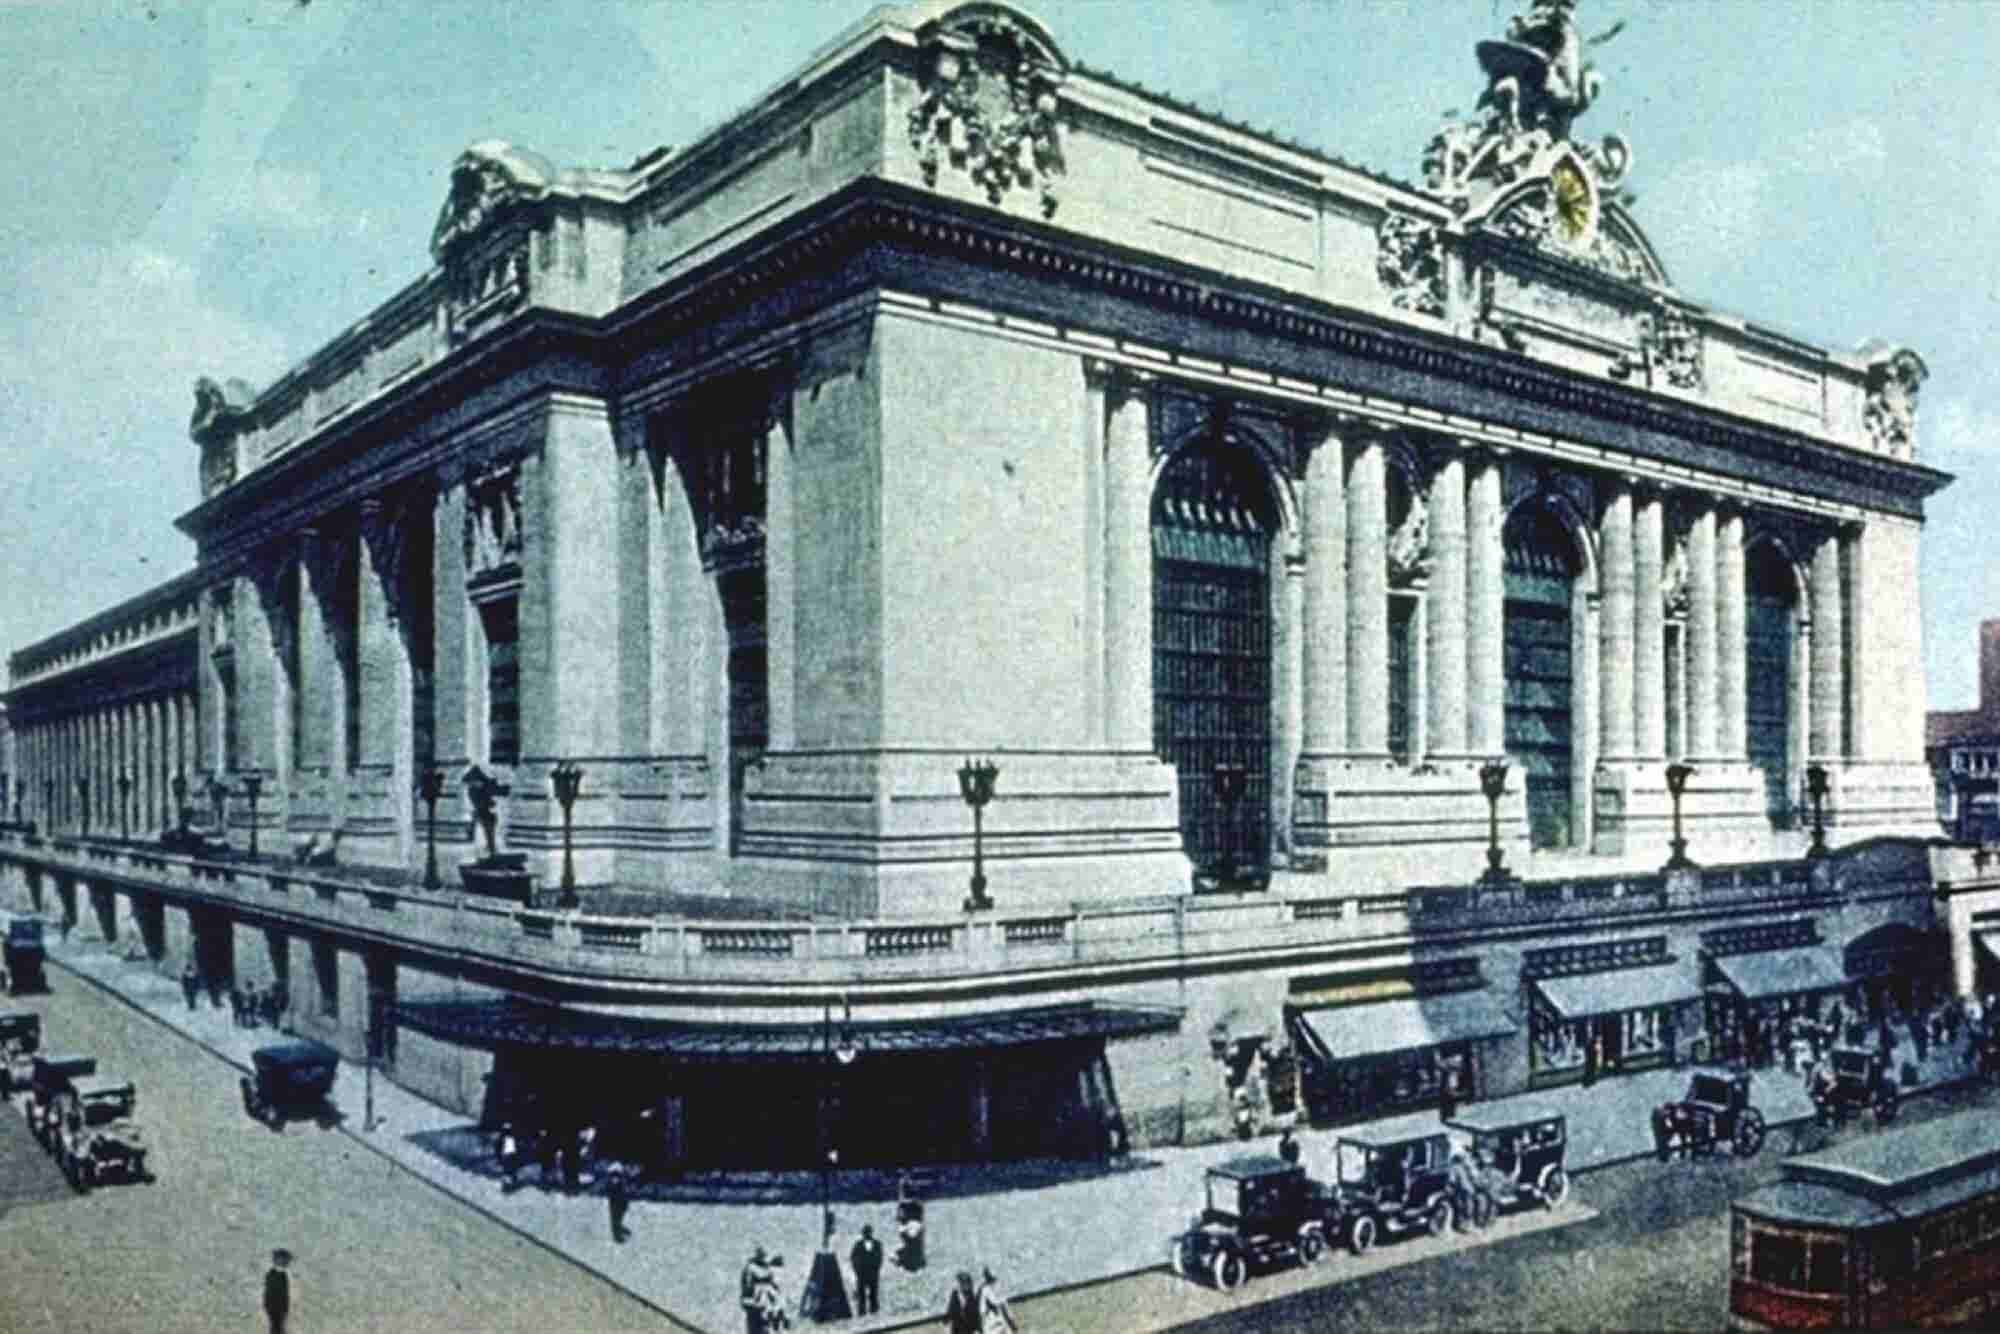 Built for Business: Midtown Manhattan in the 1920s